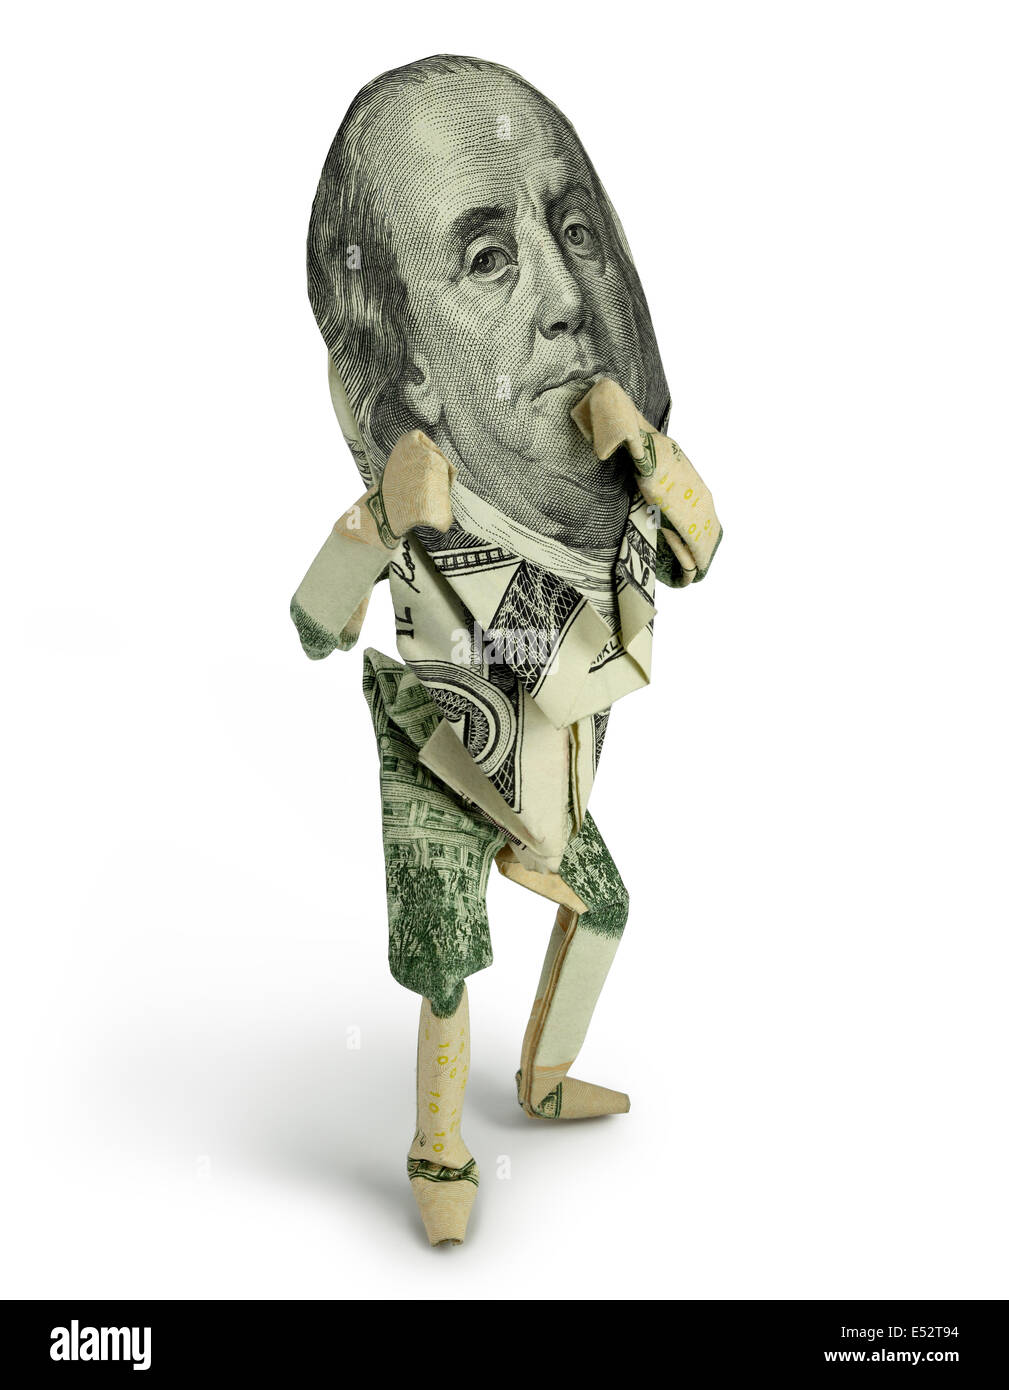 Origami Human Figure Posed With Fists Up On Pure White Background Featuring Ben Franklins Face